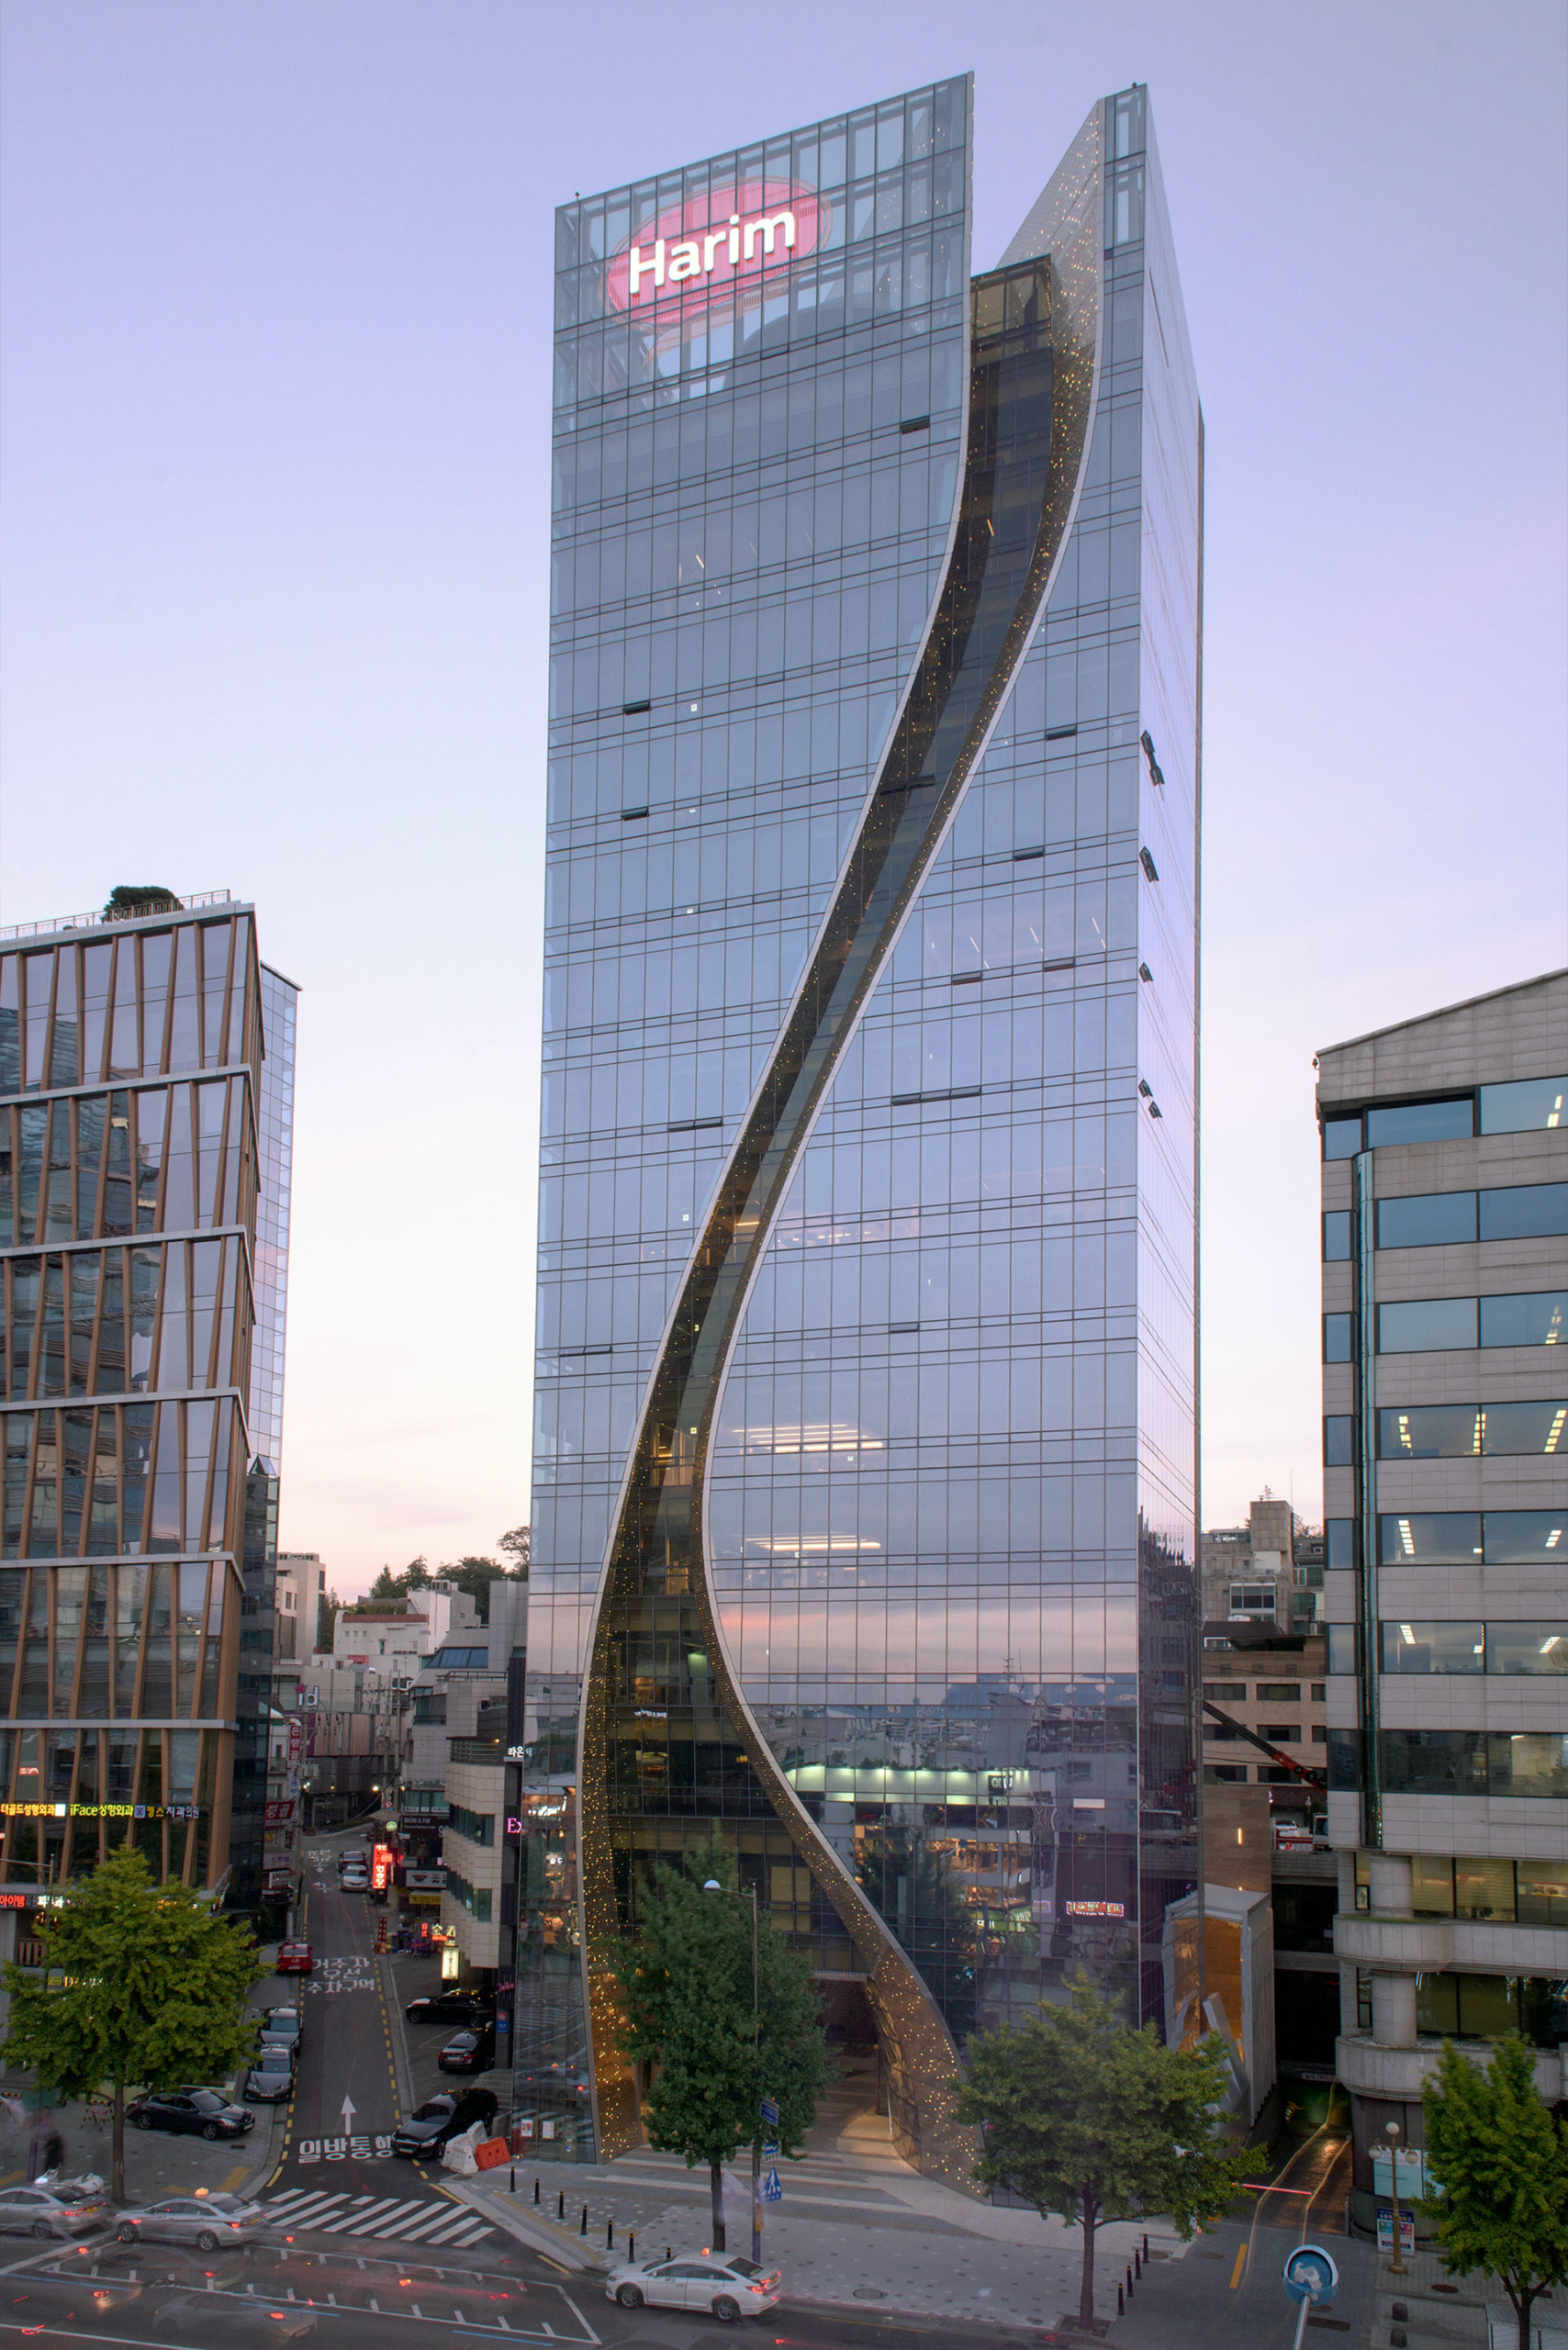 Curved metal 'S' shape facade of the Harim facade in stainless steel.